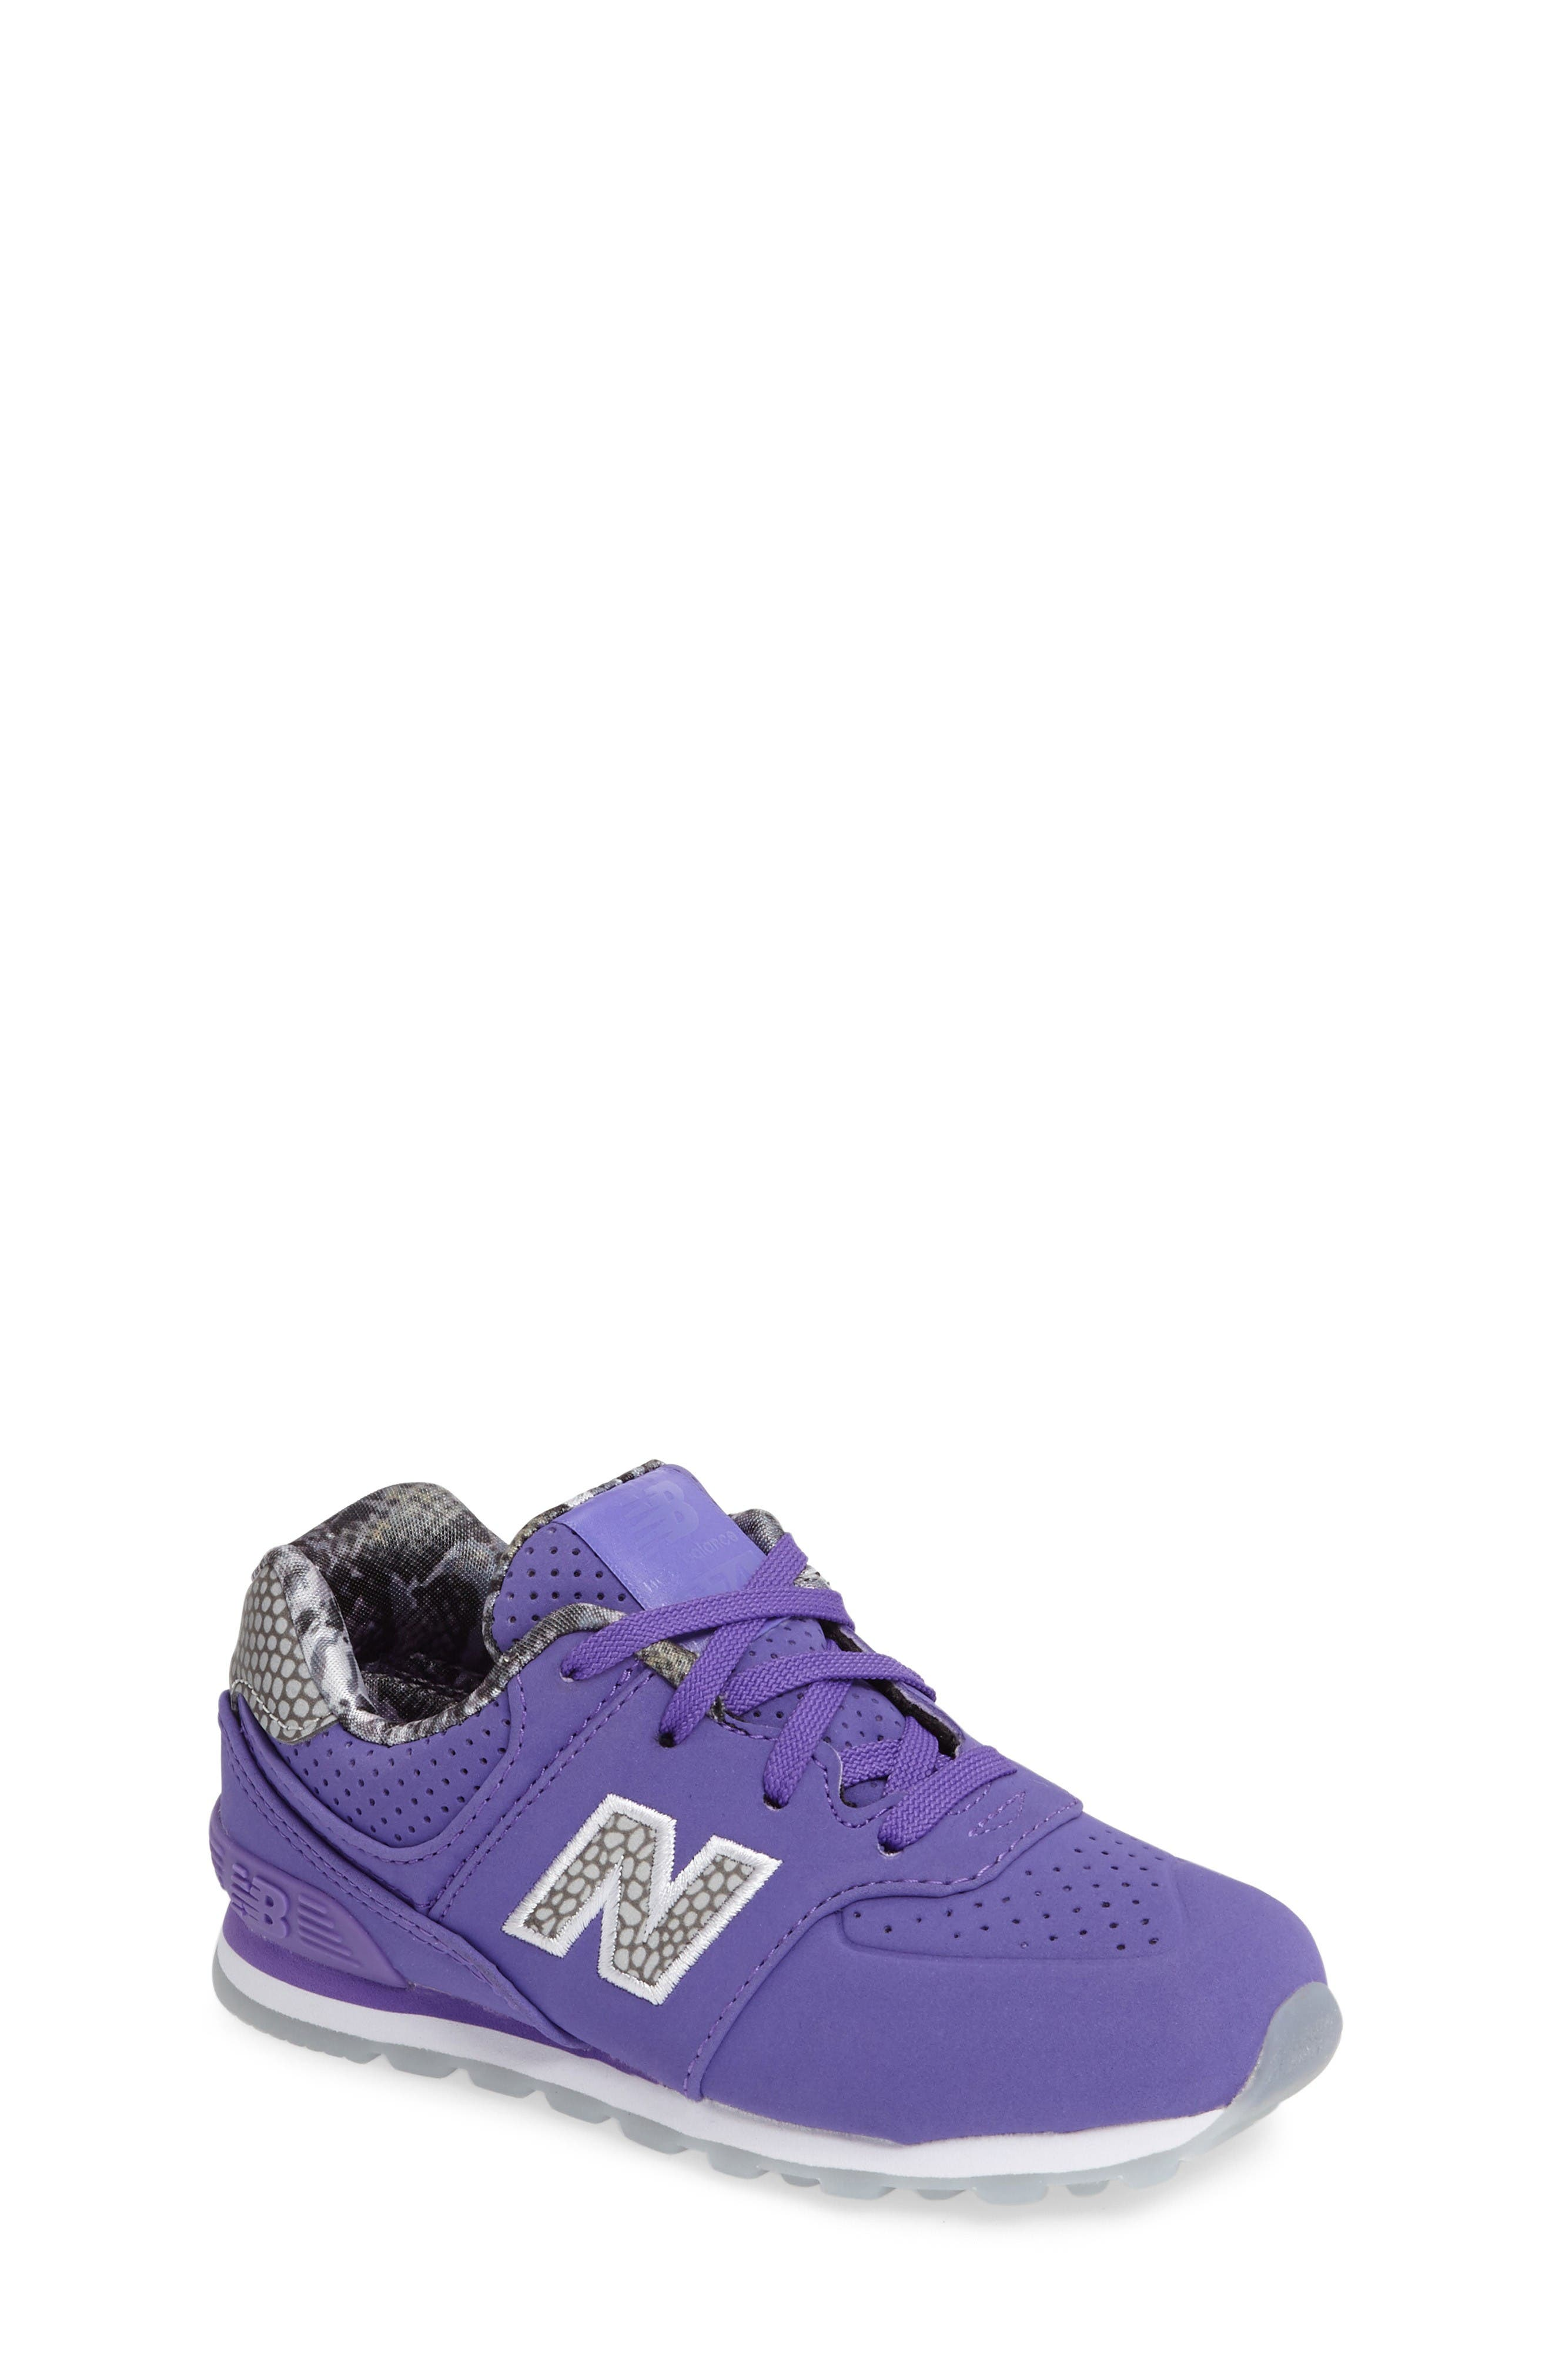 New Balance 574 Core Plus Sneaker (Baby, Walker, Toddler, Little Kid, Big Kid)